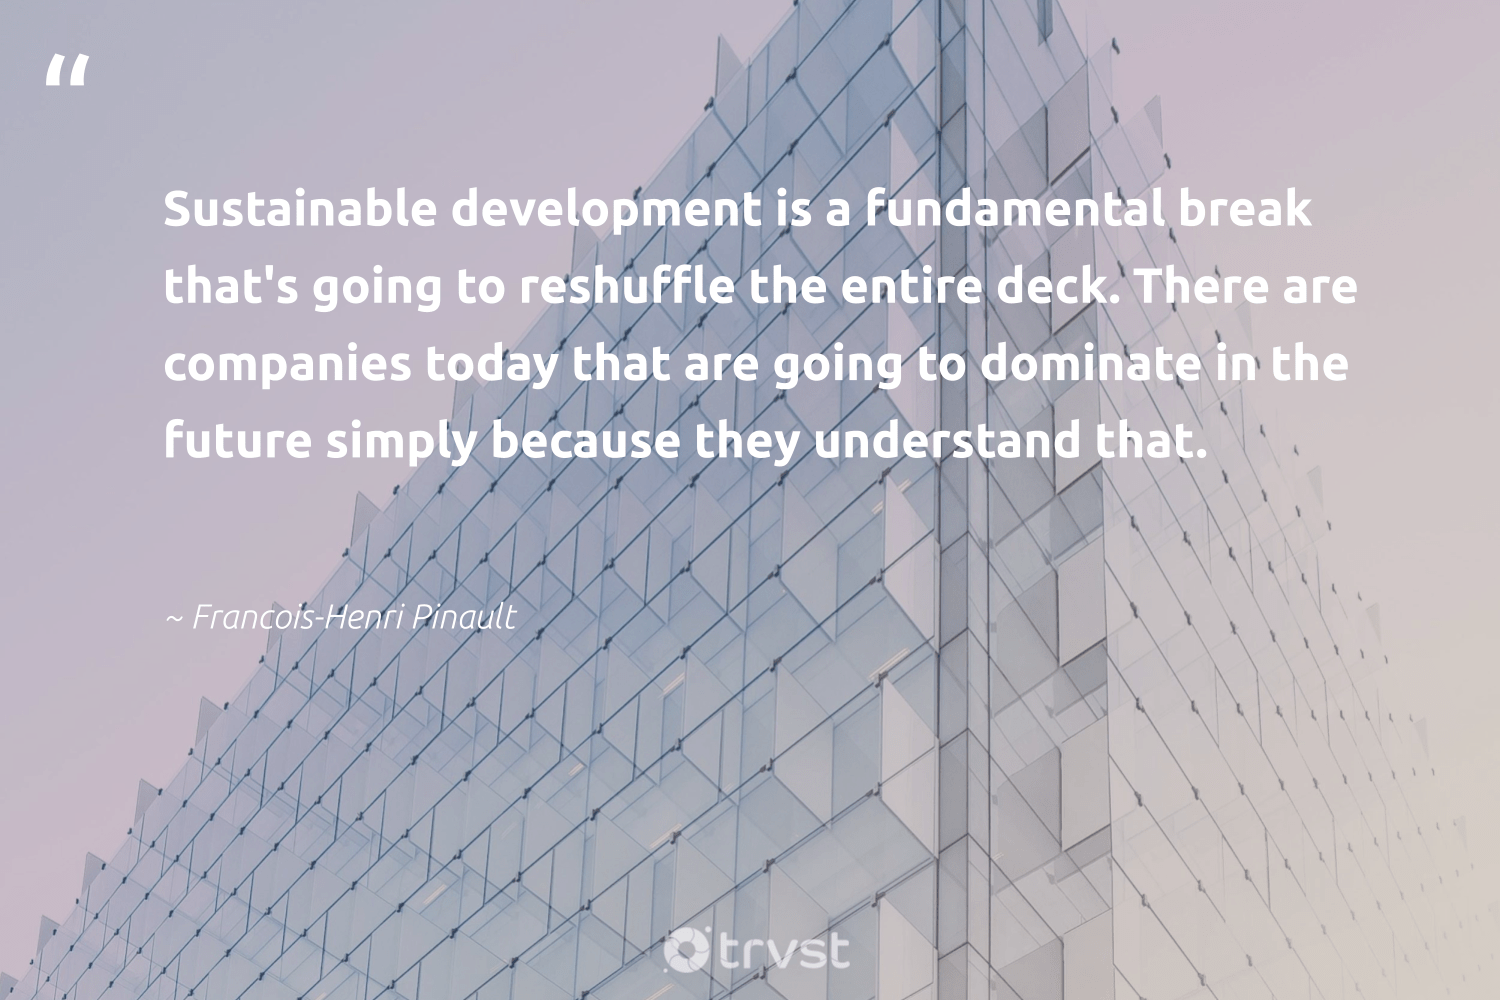 """""""Sustainable development is a fundamental break that's going to reshuffle the entire deck. There are companies today that are going to dominate in the future simply because they understand that.""""  - Francois-Henri Pinault #trvst #quotes #sustainable #development #sustainableliving #dogood #green #bethechange #sustainability #betterplanet #gogreen #changetheworld"""